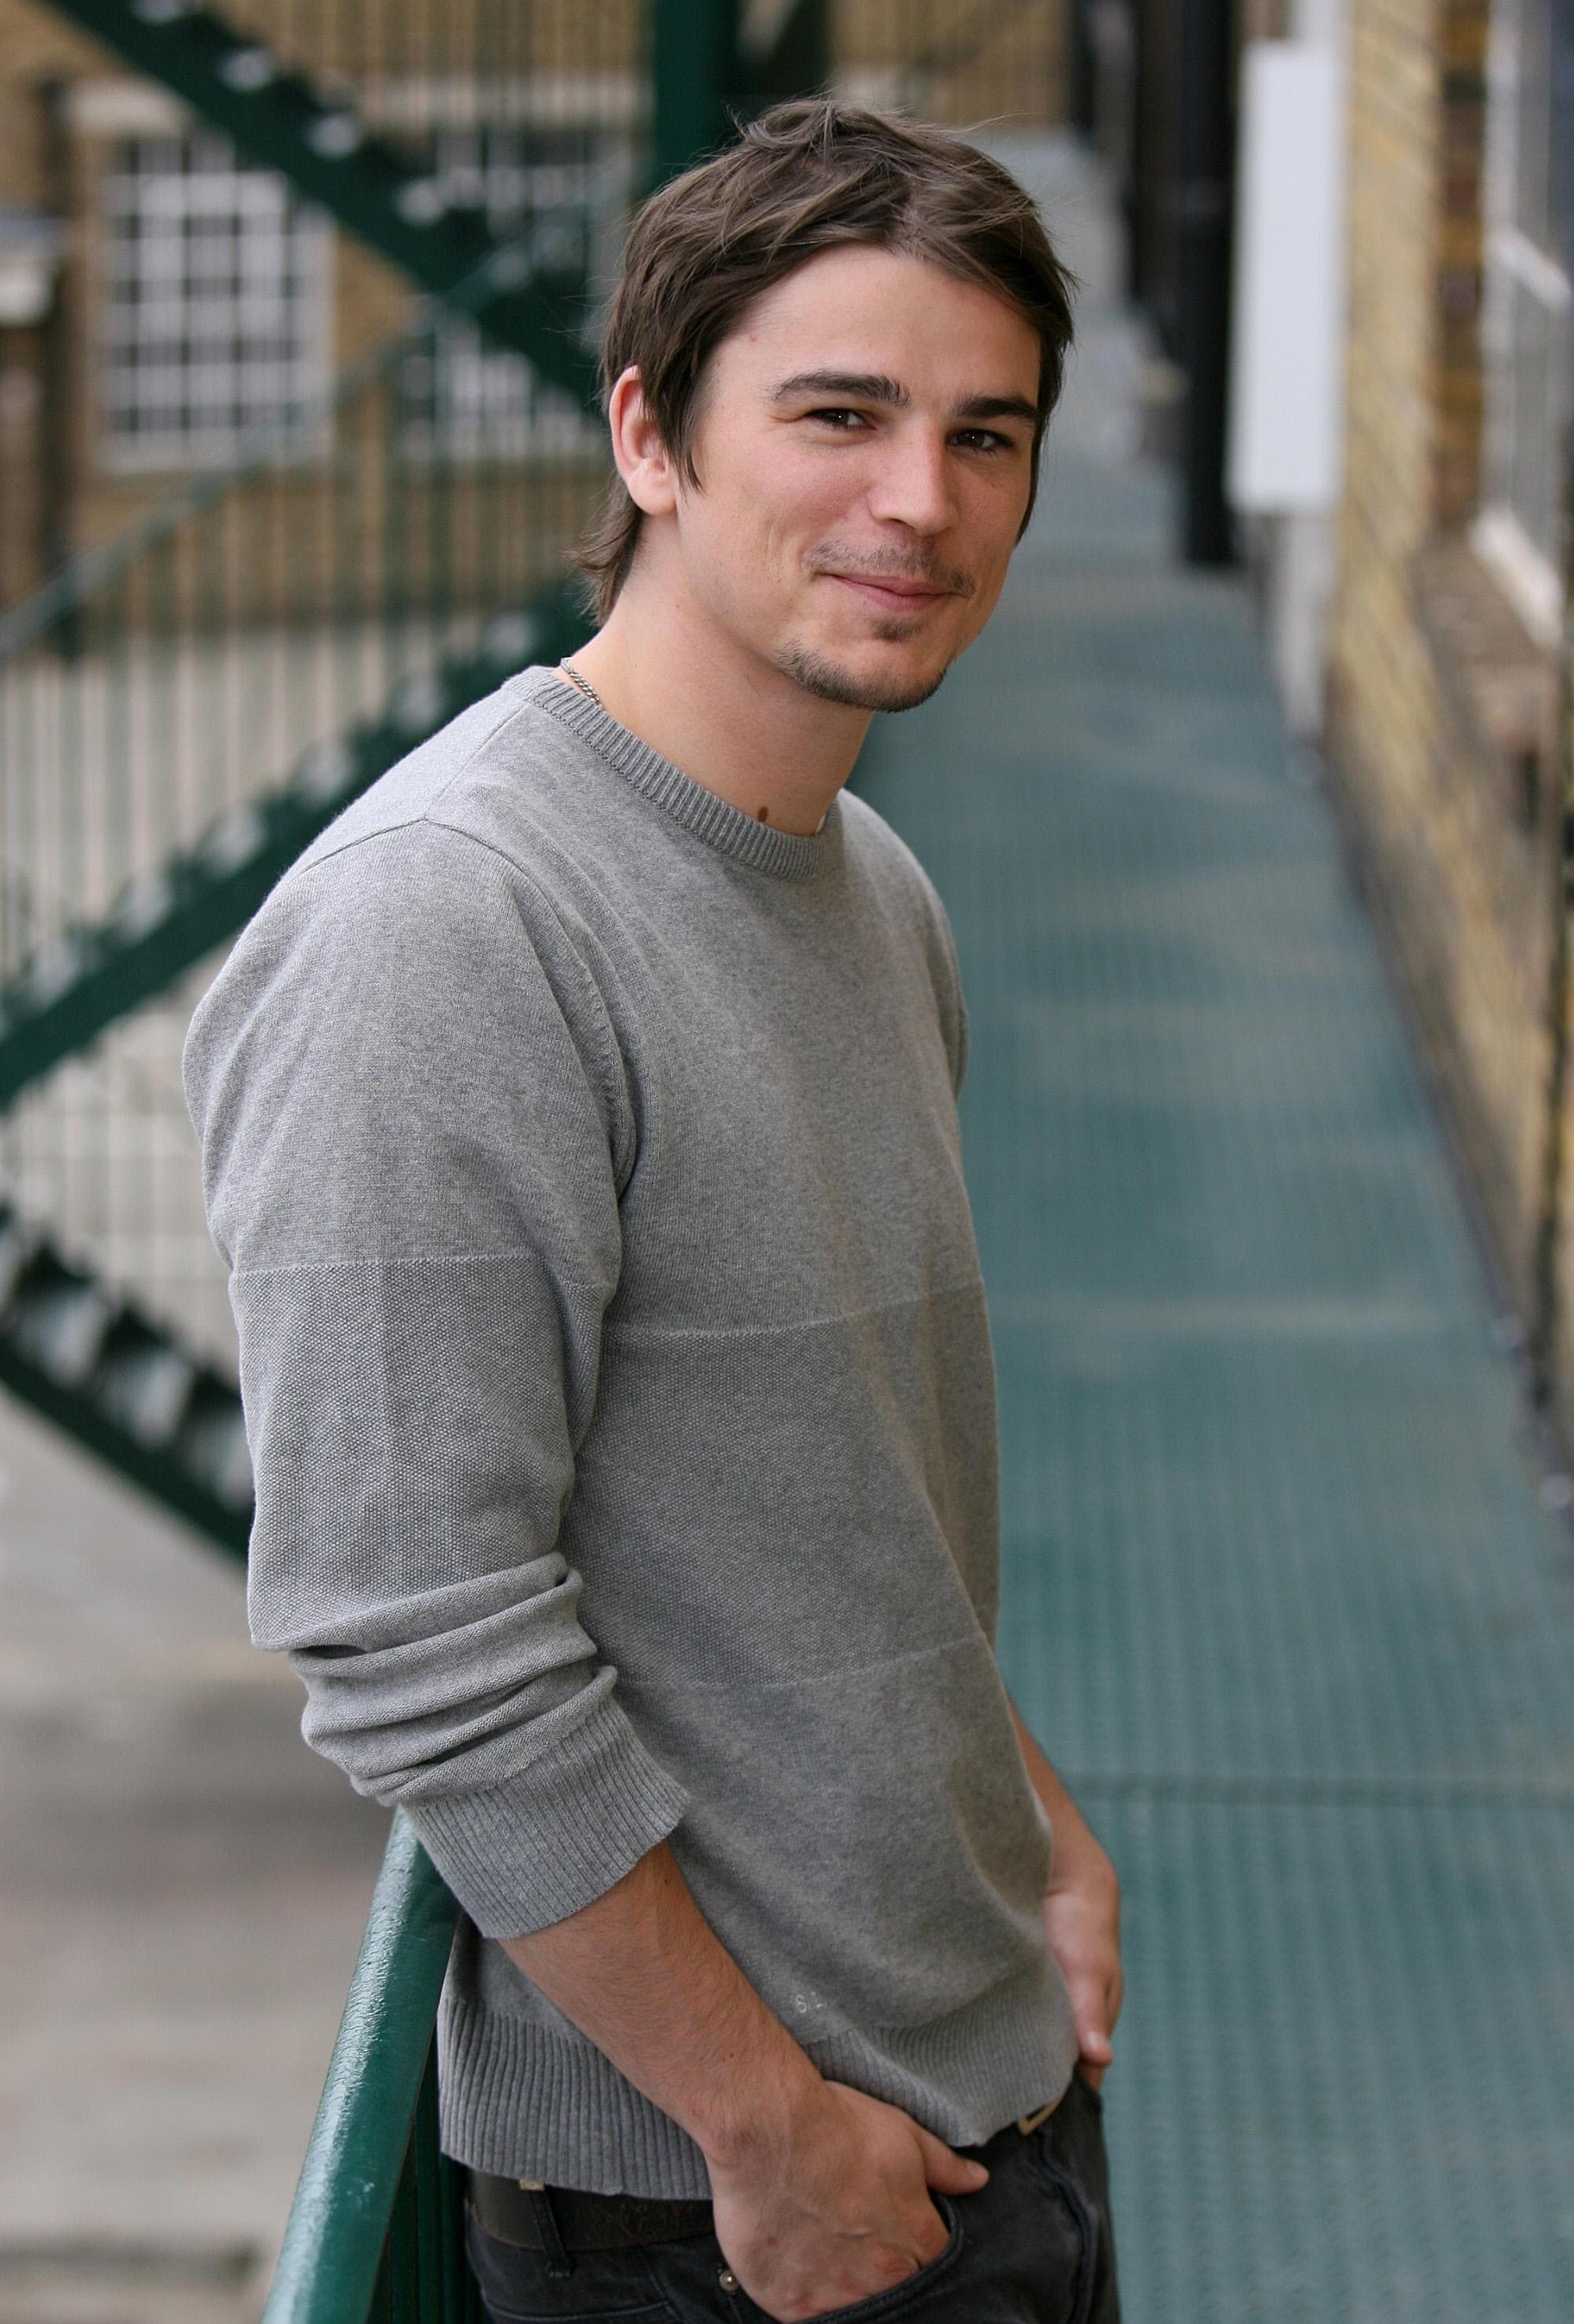 Josh Hartnett For mobile